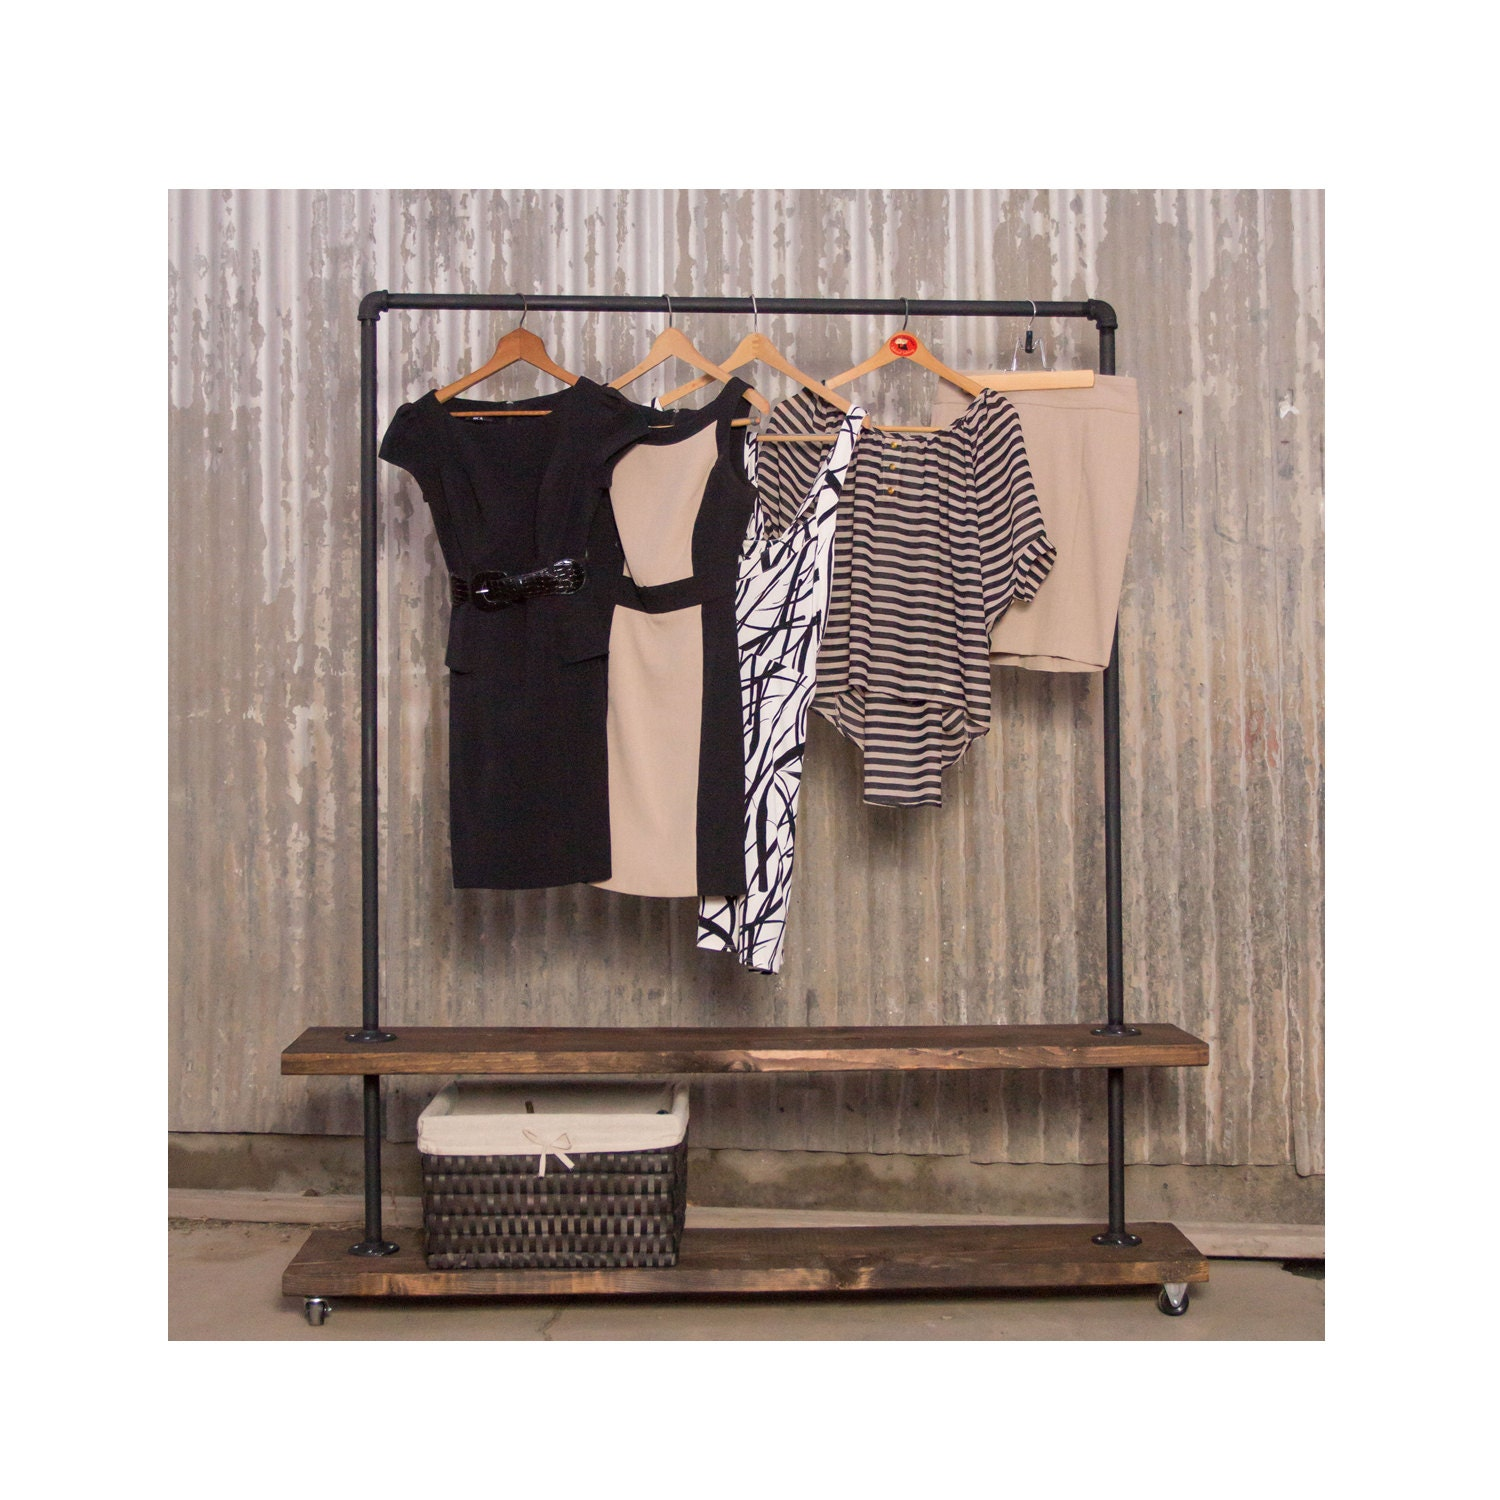 90d double shelf clothing rack pipe clothes racks. Black Bedroom Furniture Sets. Home Design Ideas